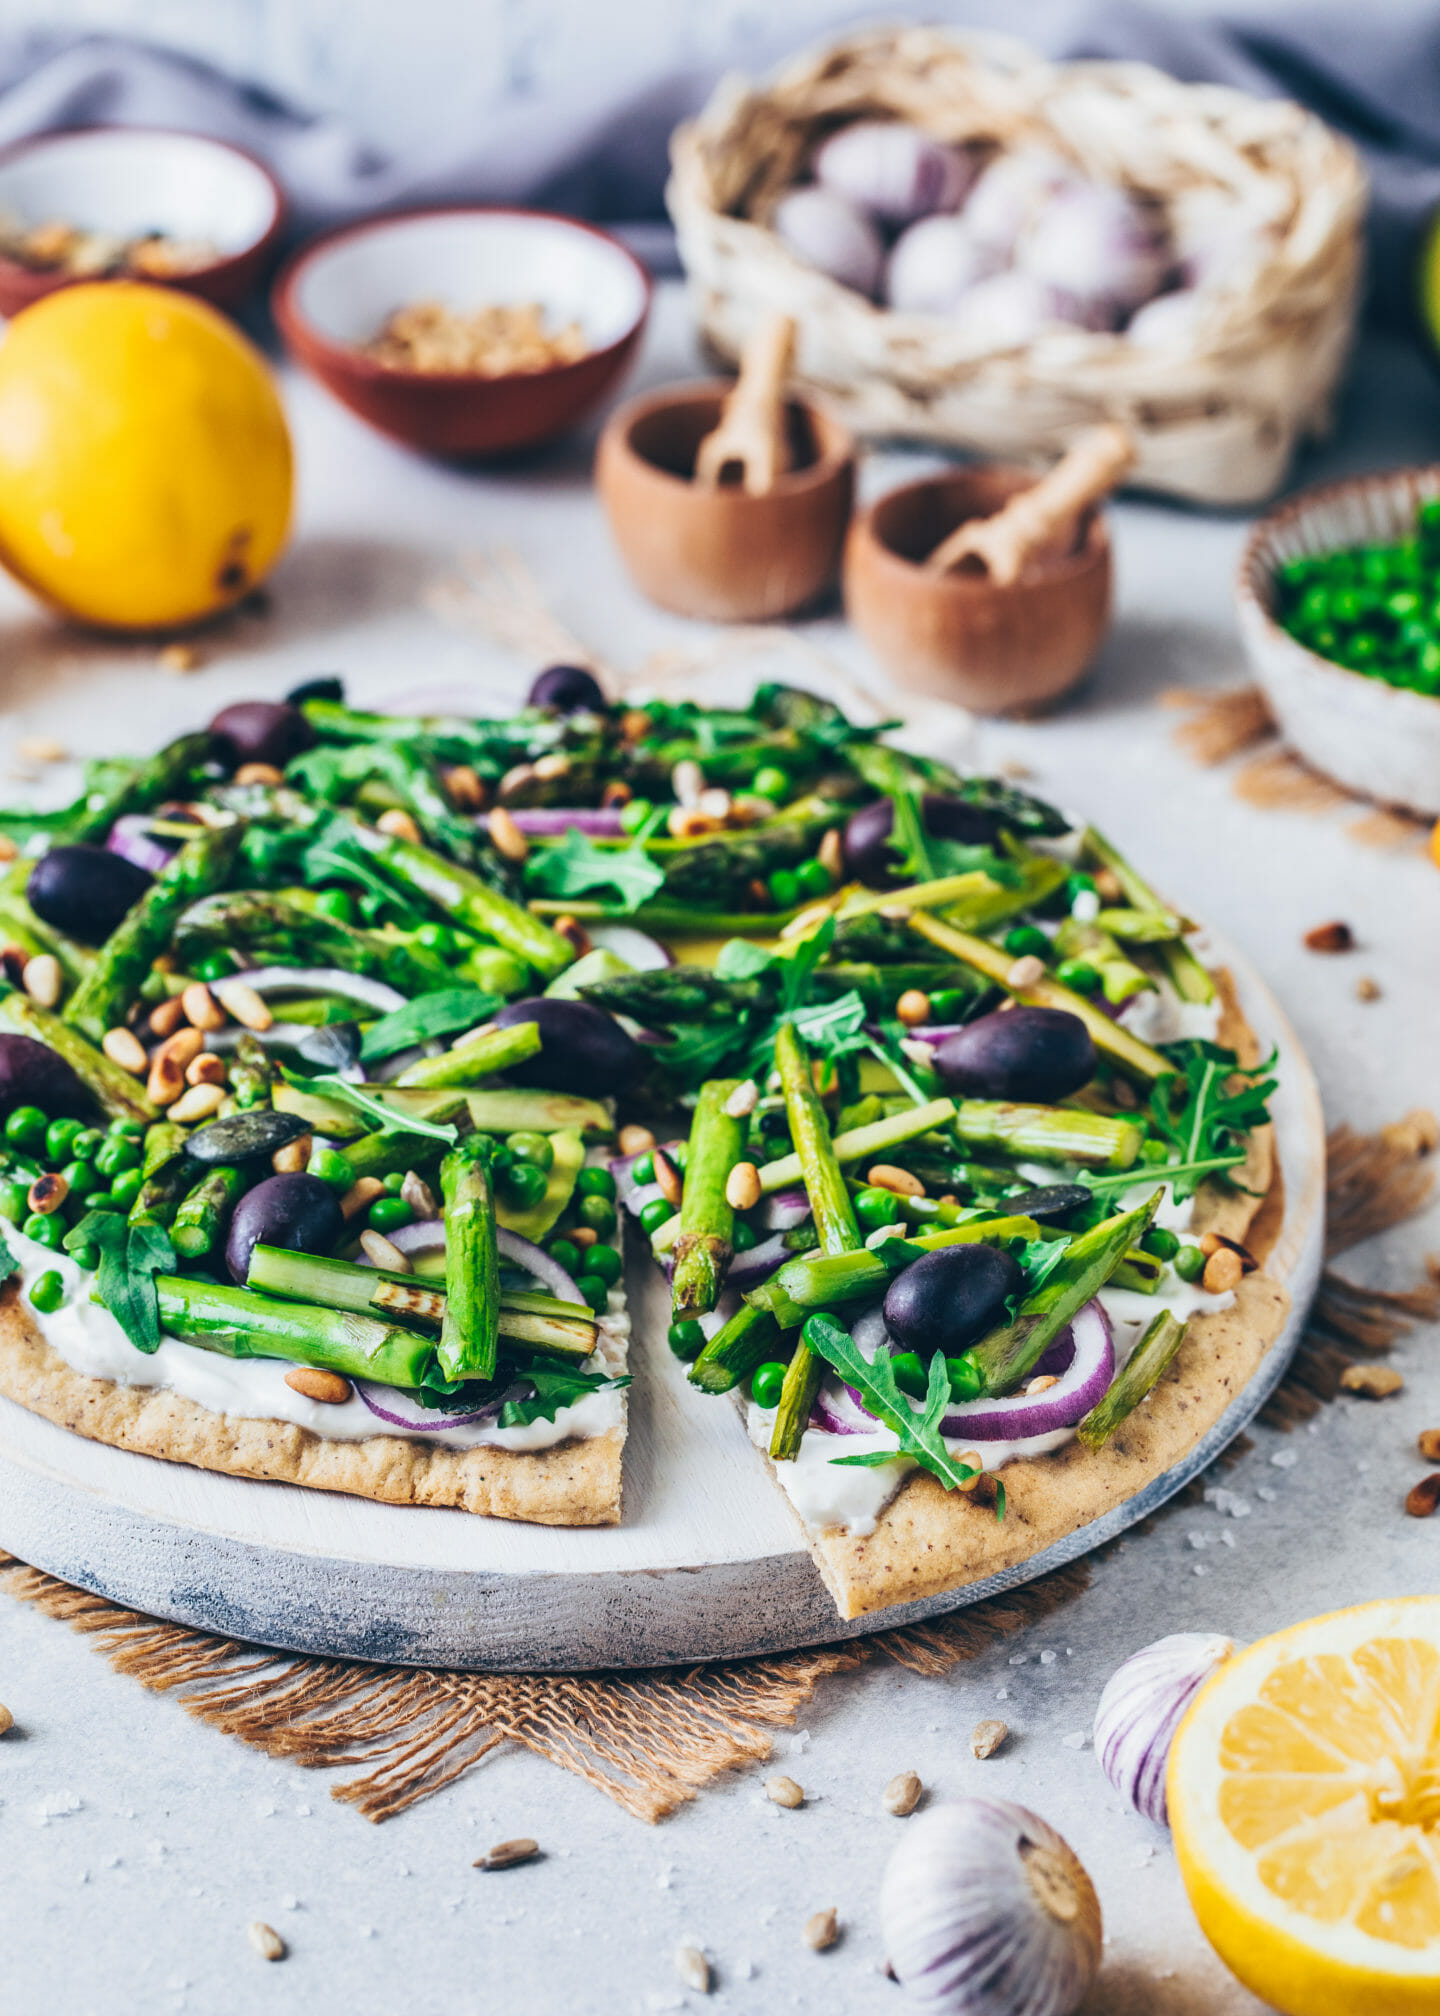 Healthy Green Pizza Recipe (Vegan, Gluten-free, Easy)